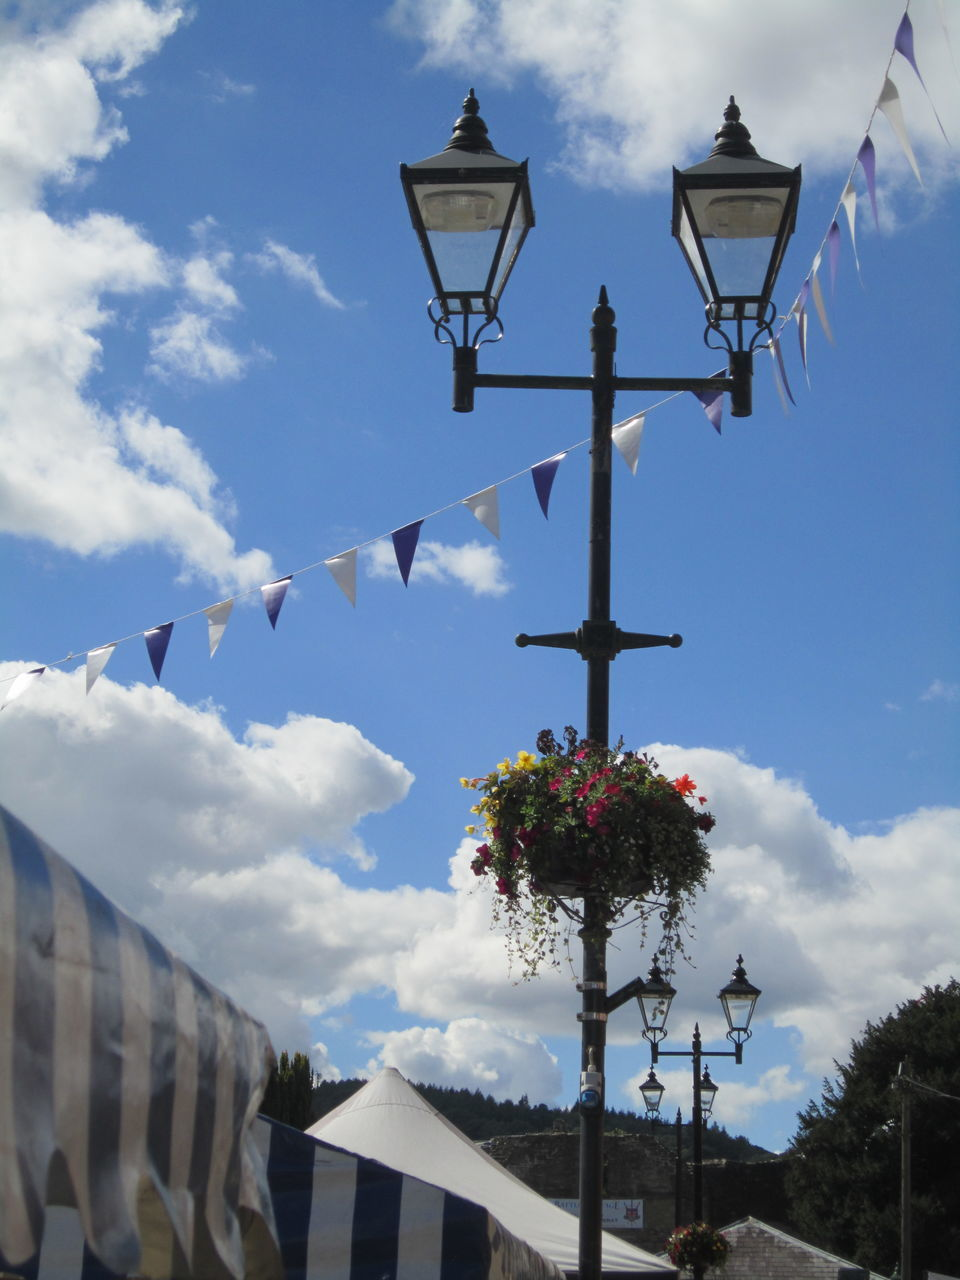 Low Angle View Of Lamp Post And Bunting Against Blue Sky